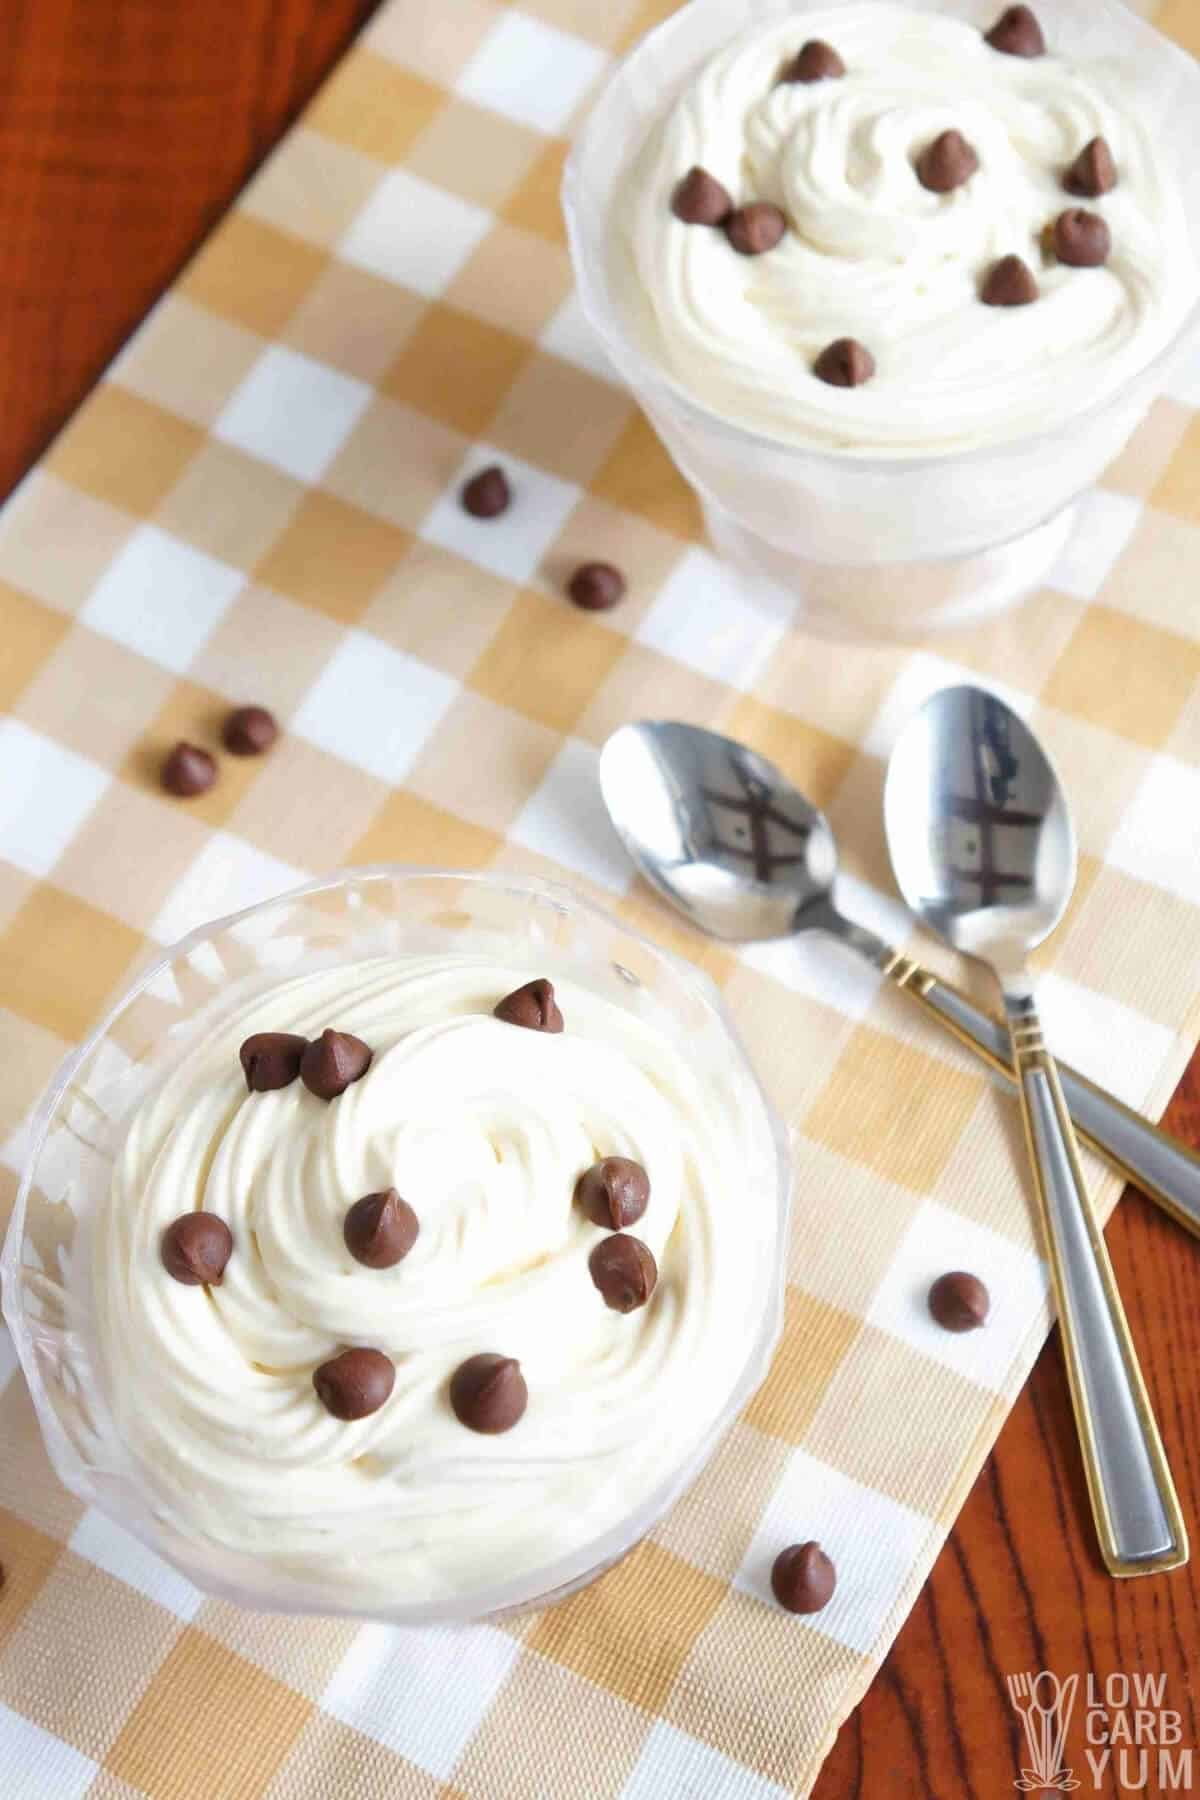 Sugar-free cheesecake mousse in individual glasses